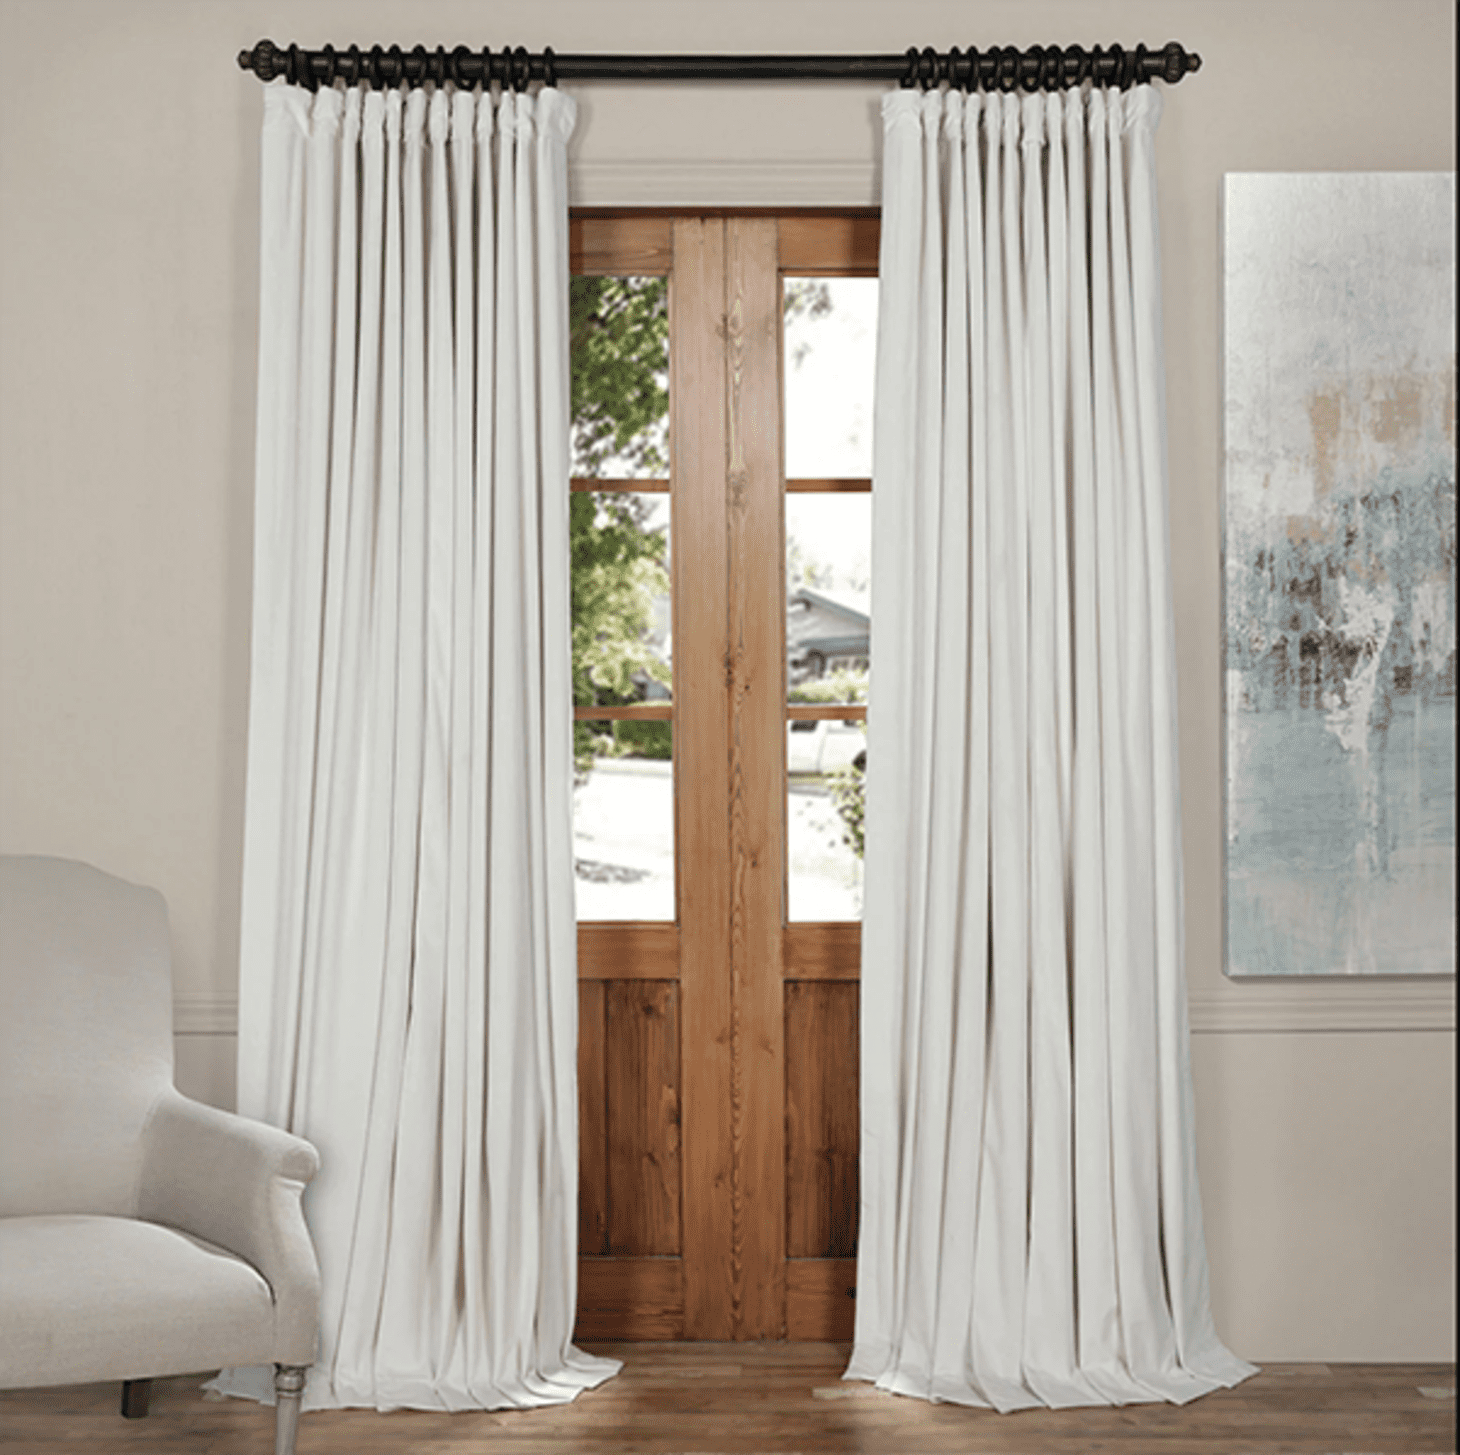 Best Insulated Blackout Curtains | Apartment Therapy In Solid Cotton True Blackout Curtain Panels (View 7 of 30)